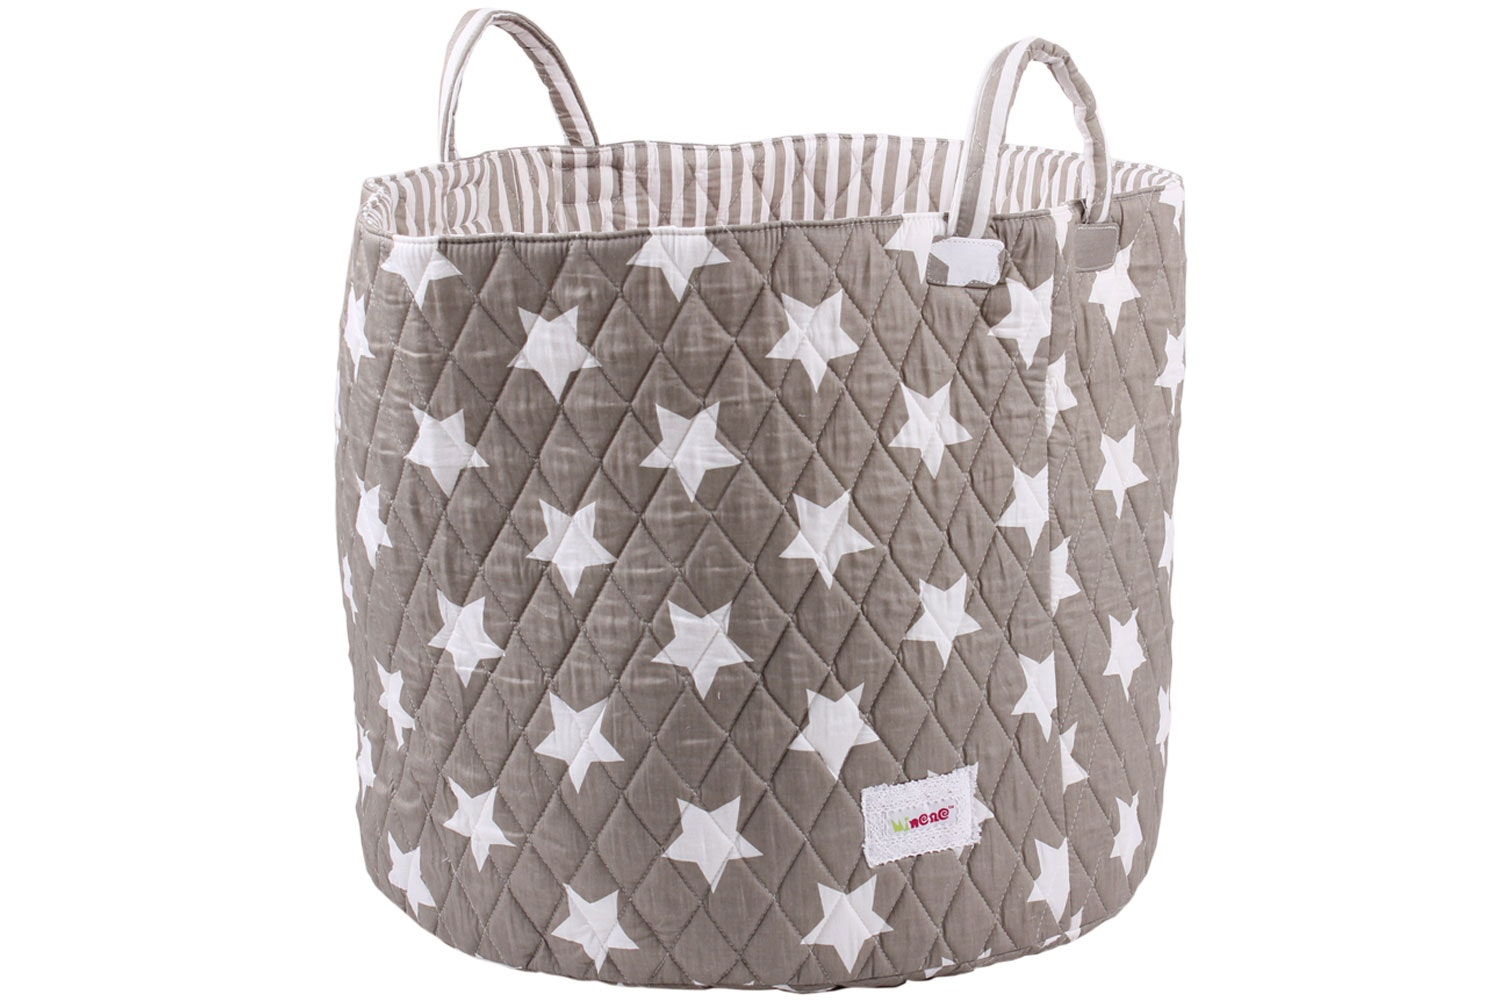 Minene Large Storage Basket | Taupe Star